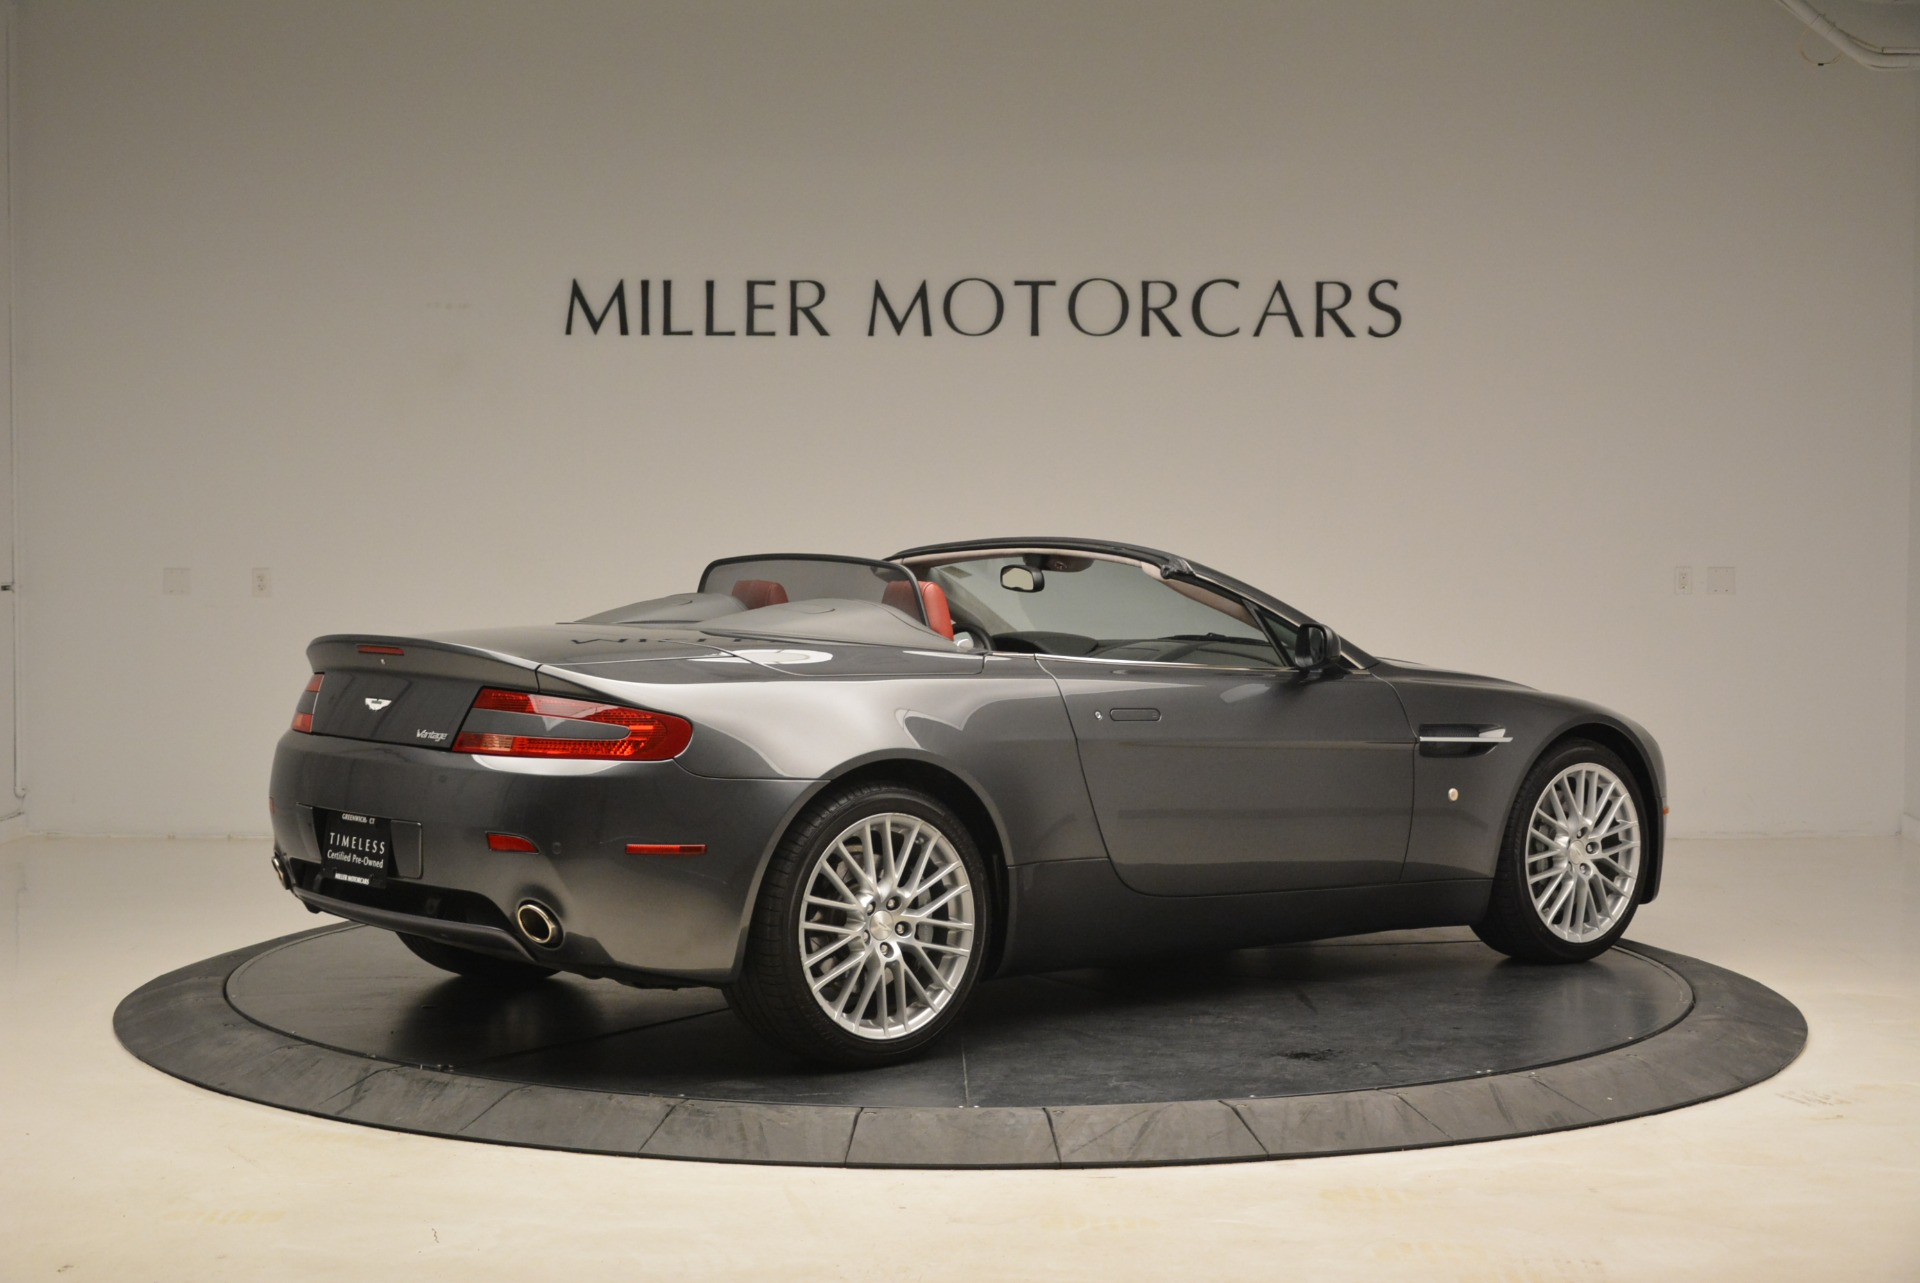 Used 2009 Aston Martin V8 Vantage Roadster For Sale In Westport, CT 2123_p8